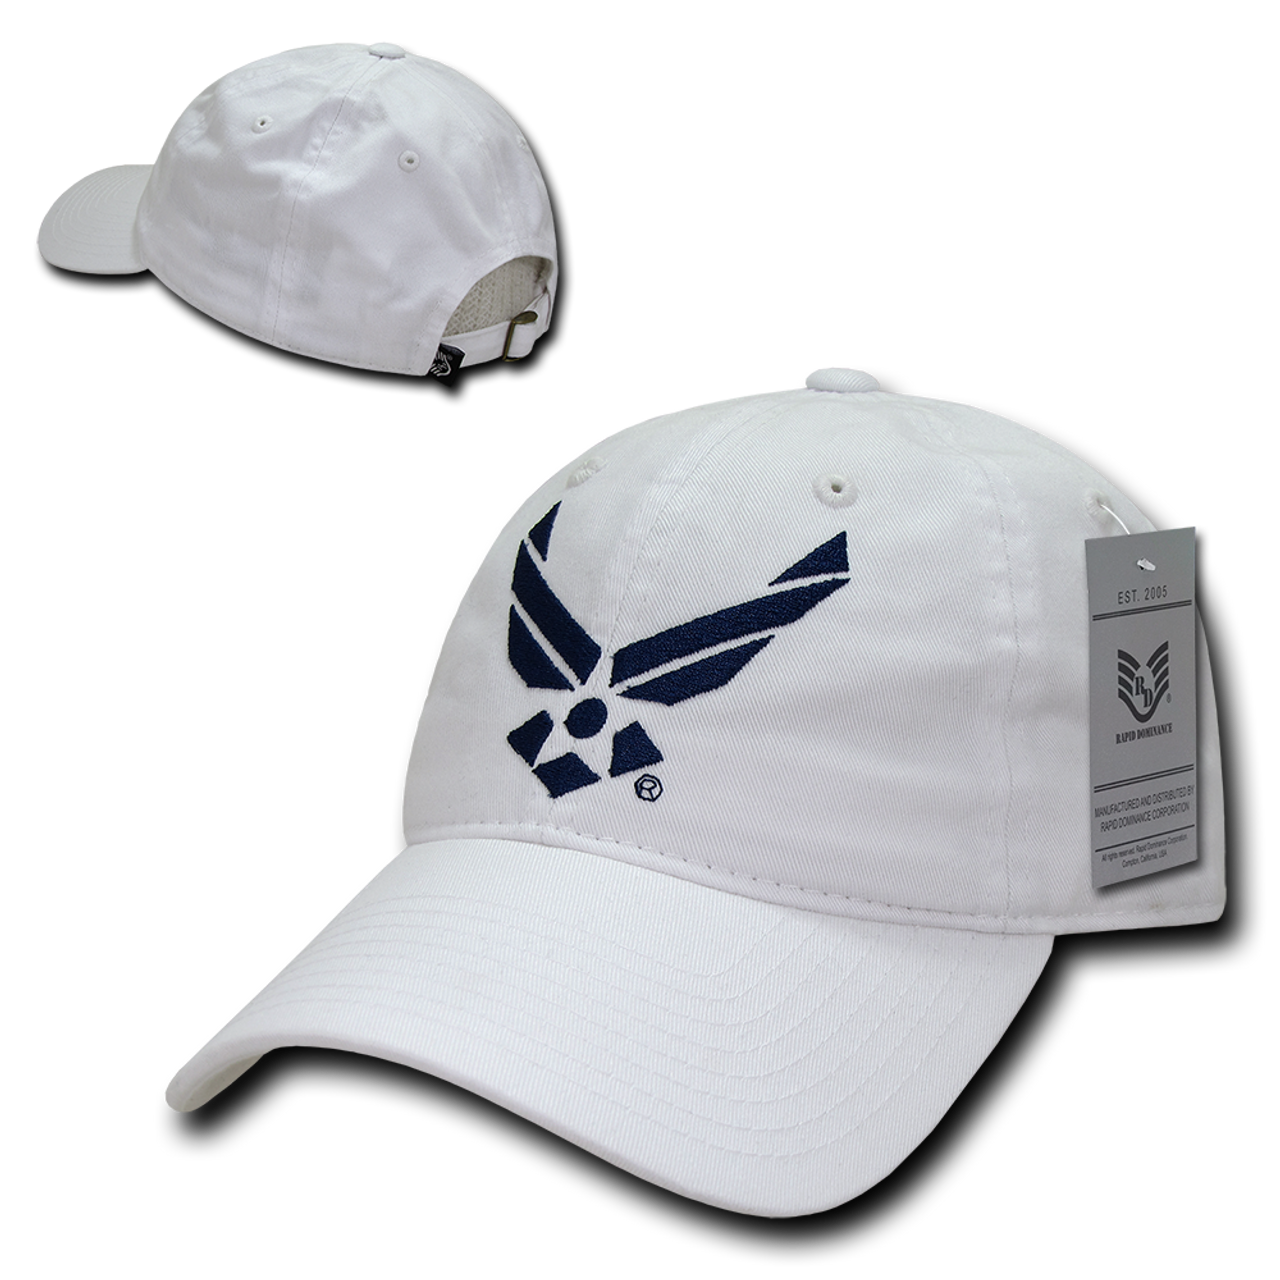 efa785eec1c ... S78 - Military Hat - U.S. Air Force Wings Cap - Relaxed Cotton - White  ...